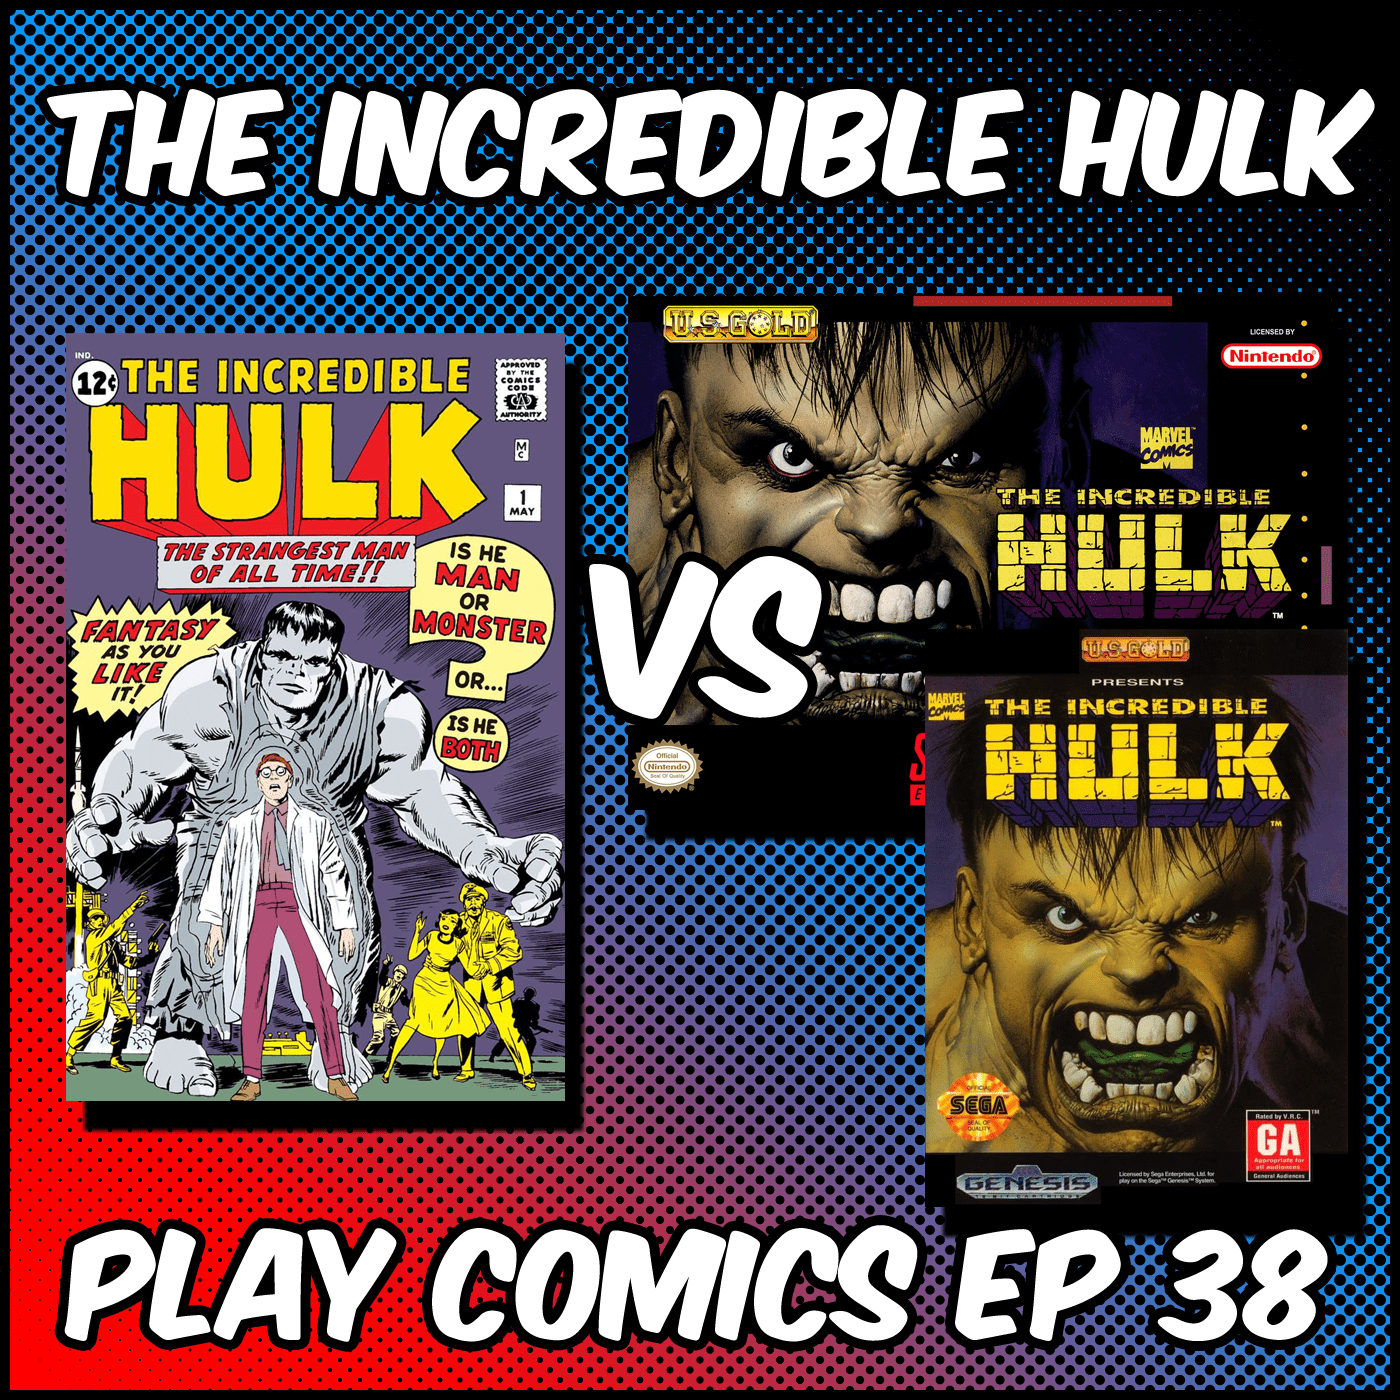 The Incredible Hulk With Phil Primeau (Semi Intellectual Musings)